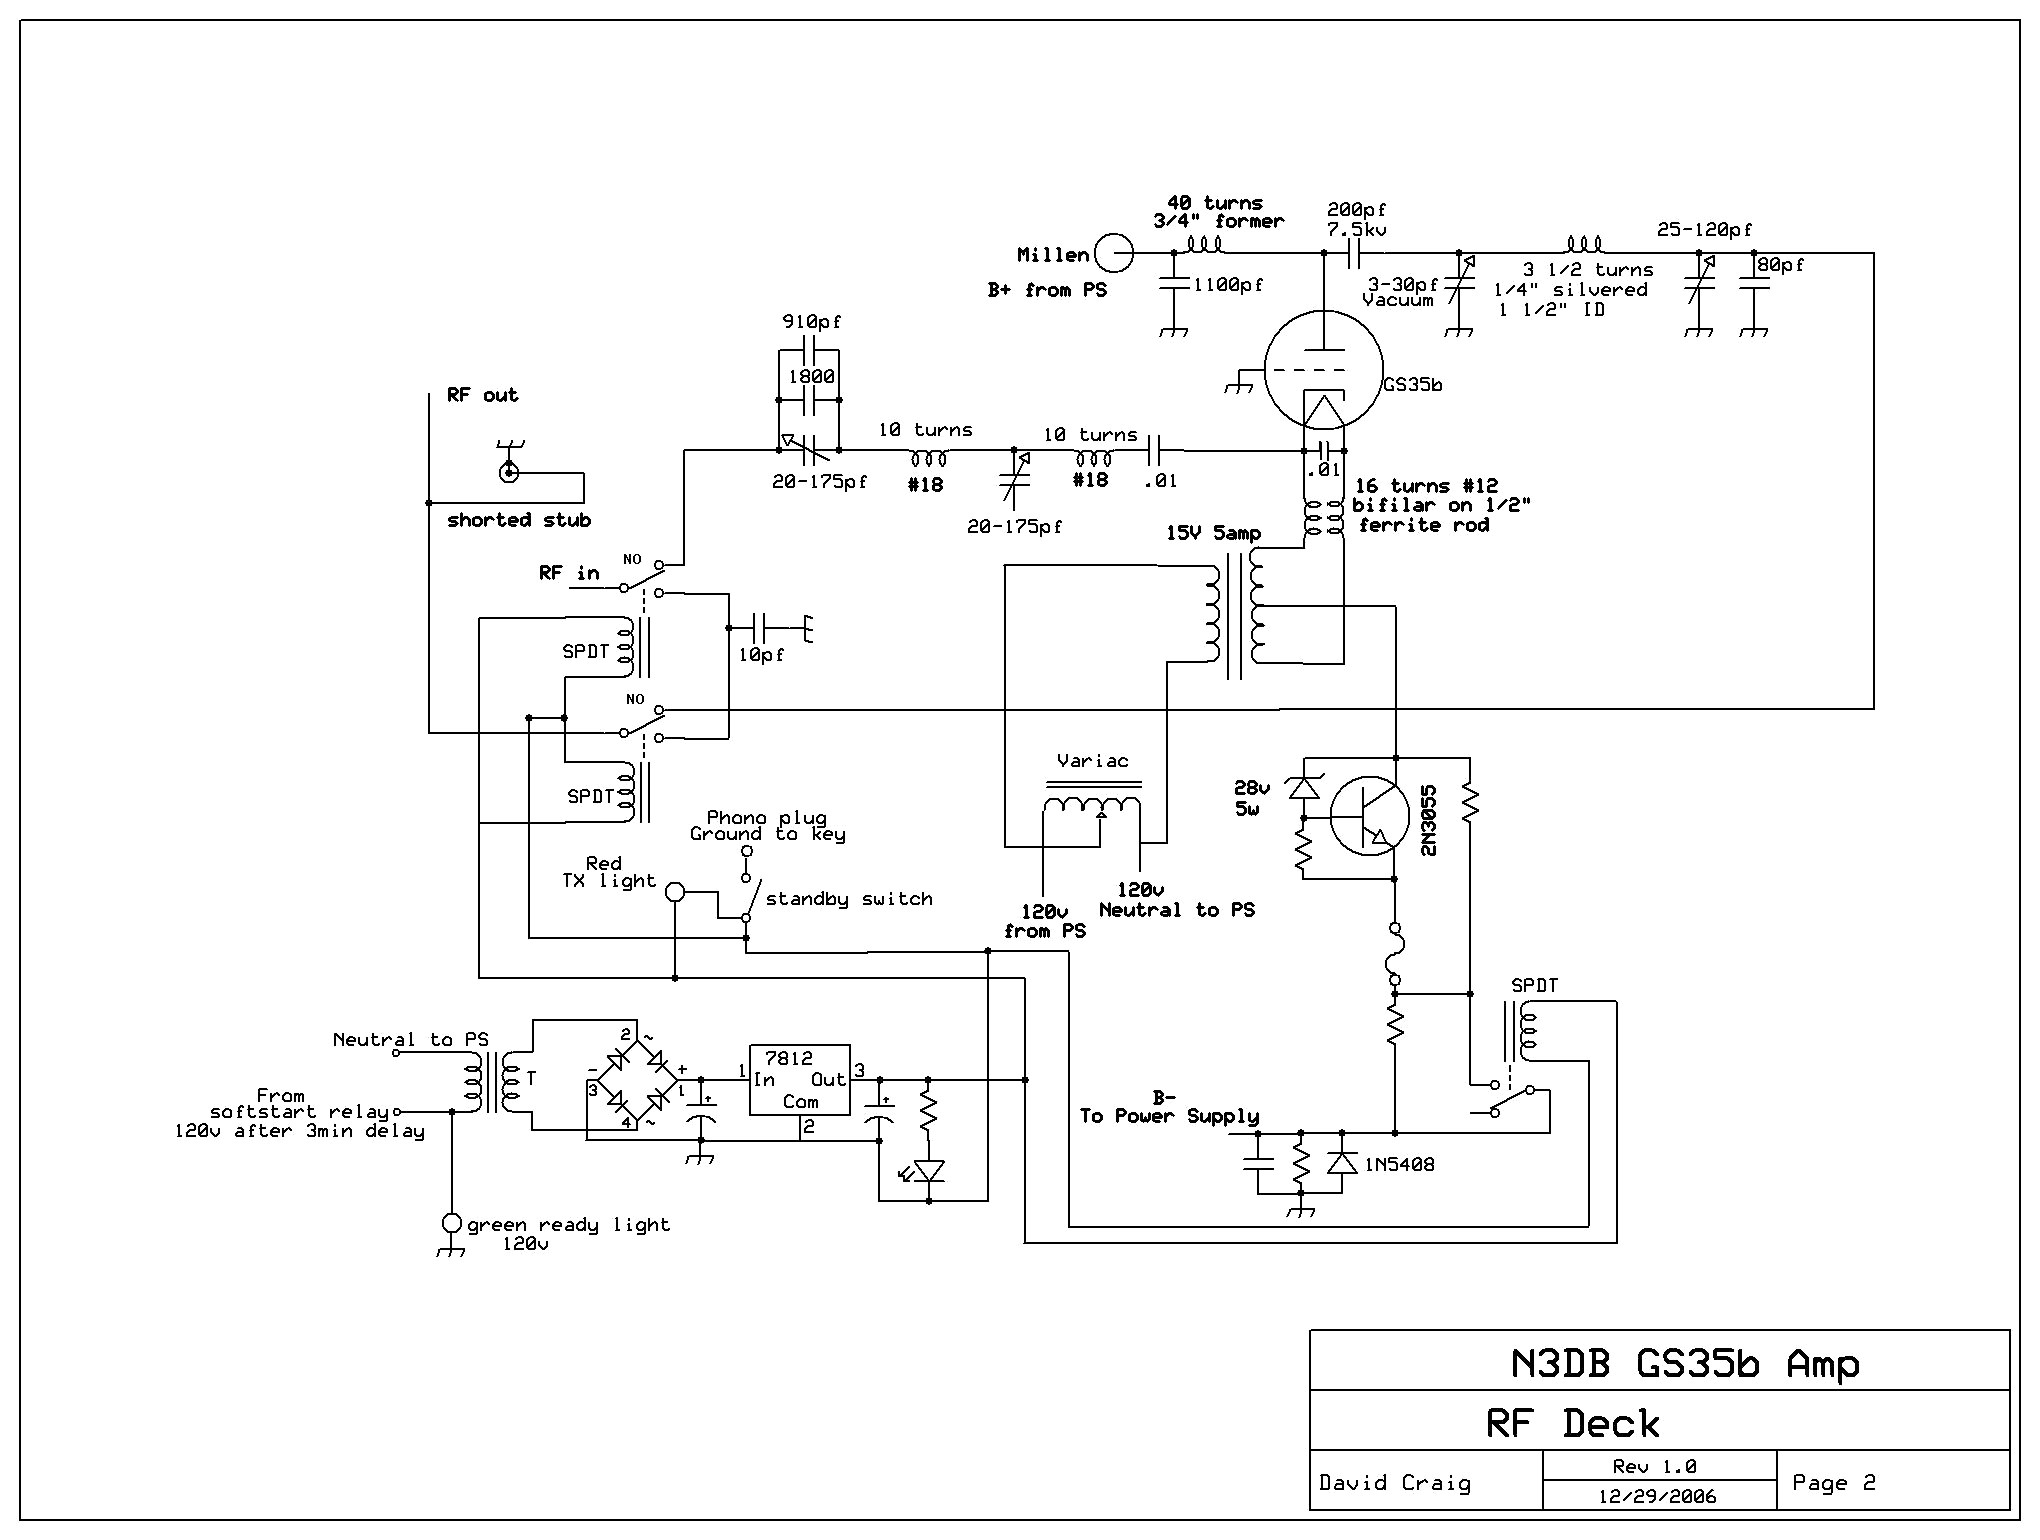 tork time clock wiring diagram Download-tork time clock wiring diagram tork cell wiring diagram unique of tork time clock wiring diagram 1 19-p